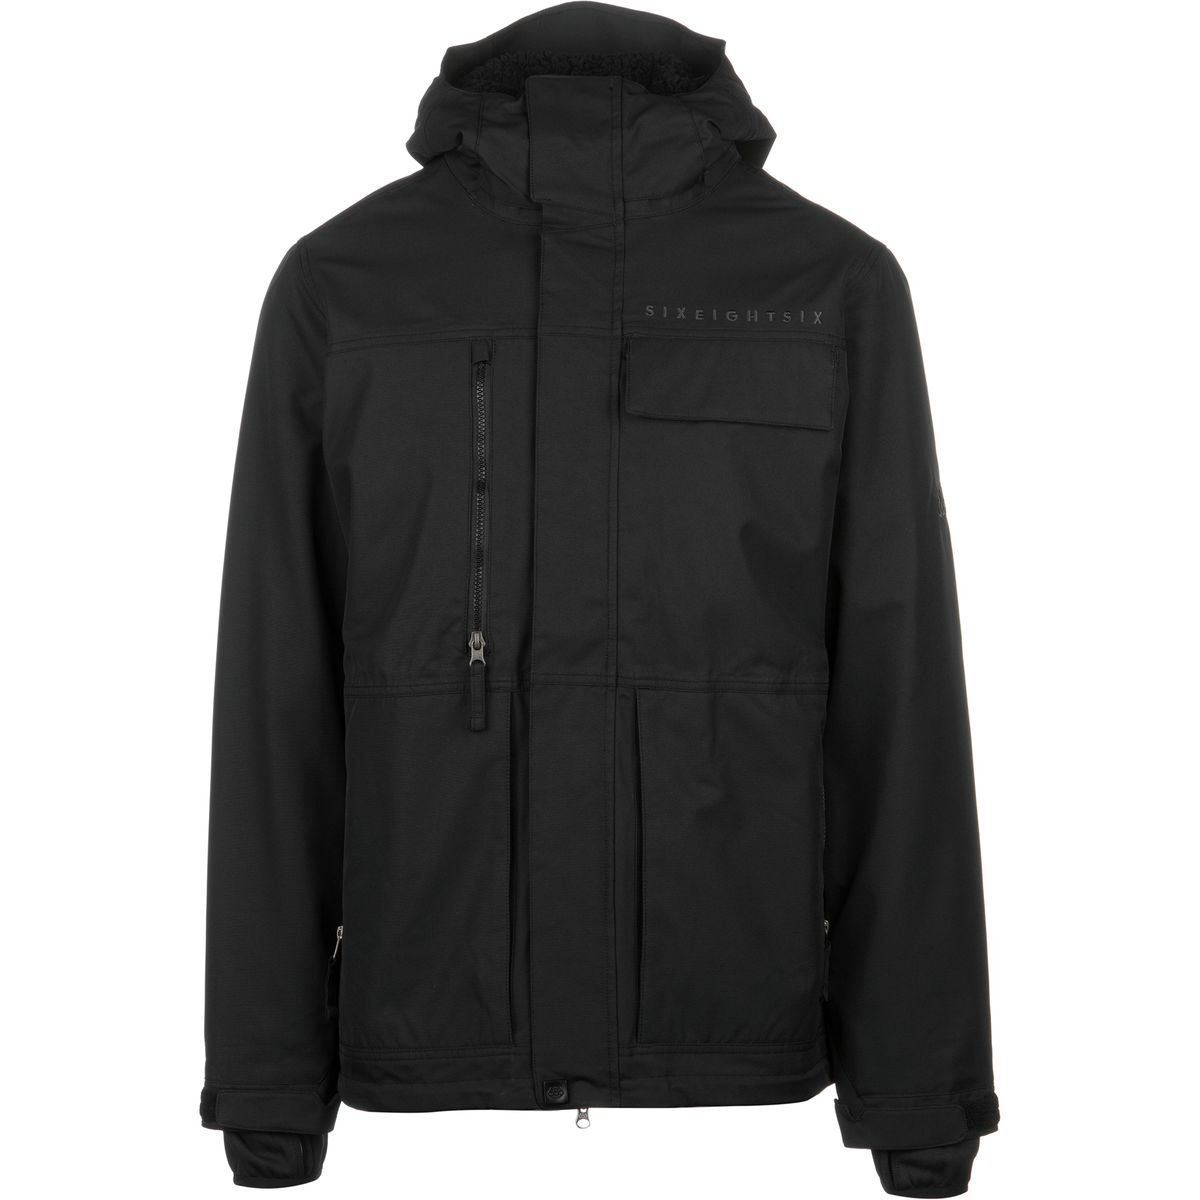 686 Authentic Smarty Form 3-In-1 Jacket - Men